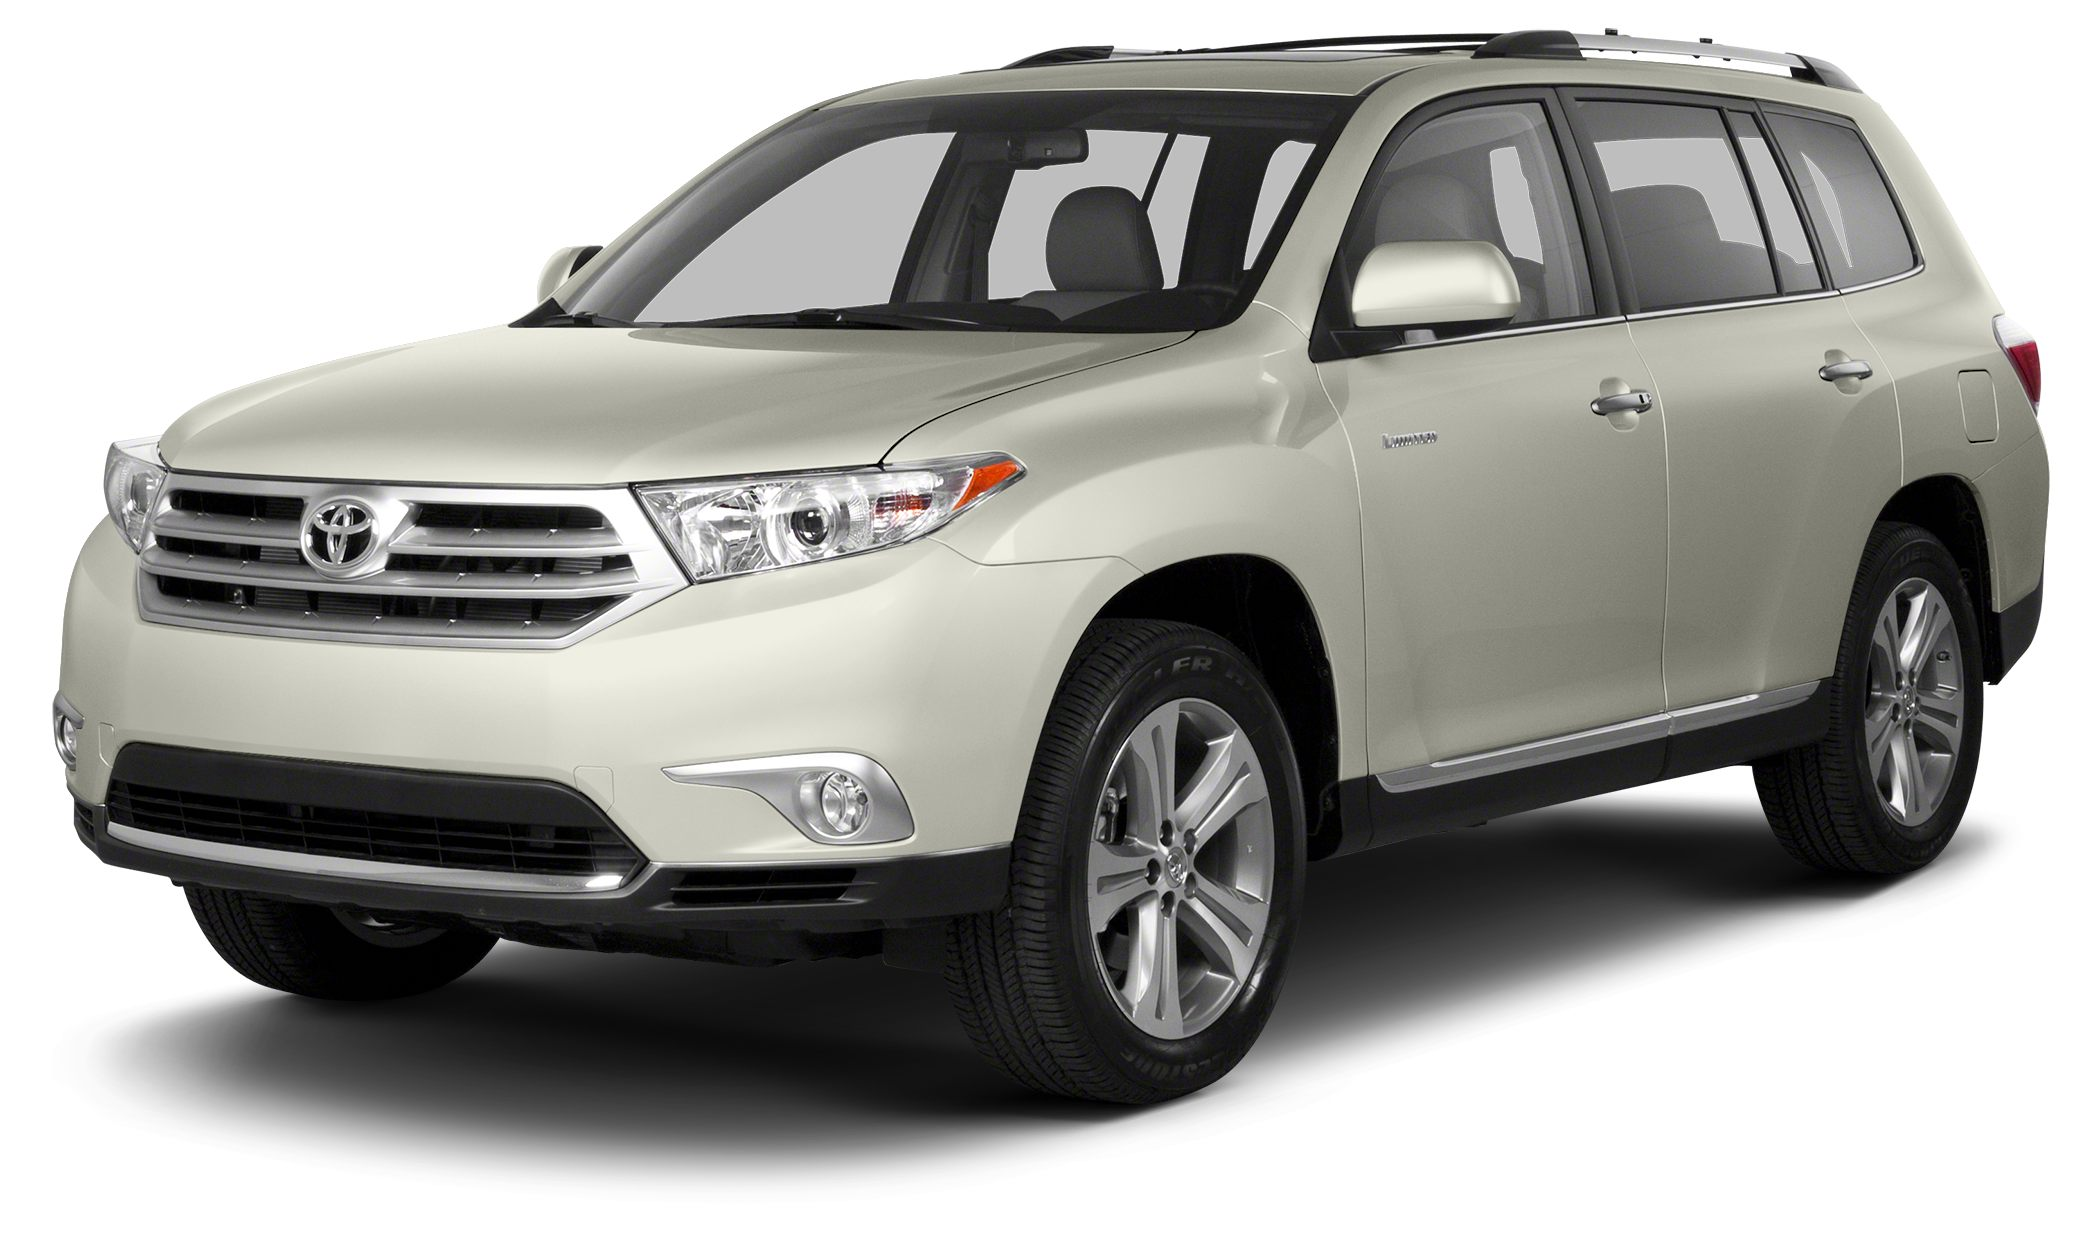 2013 Toyota Highlander Limited Toyota Certified LOW MILES - 50844 BLIZZARD PEARL exterior and S